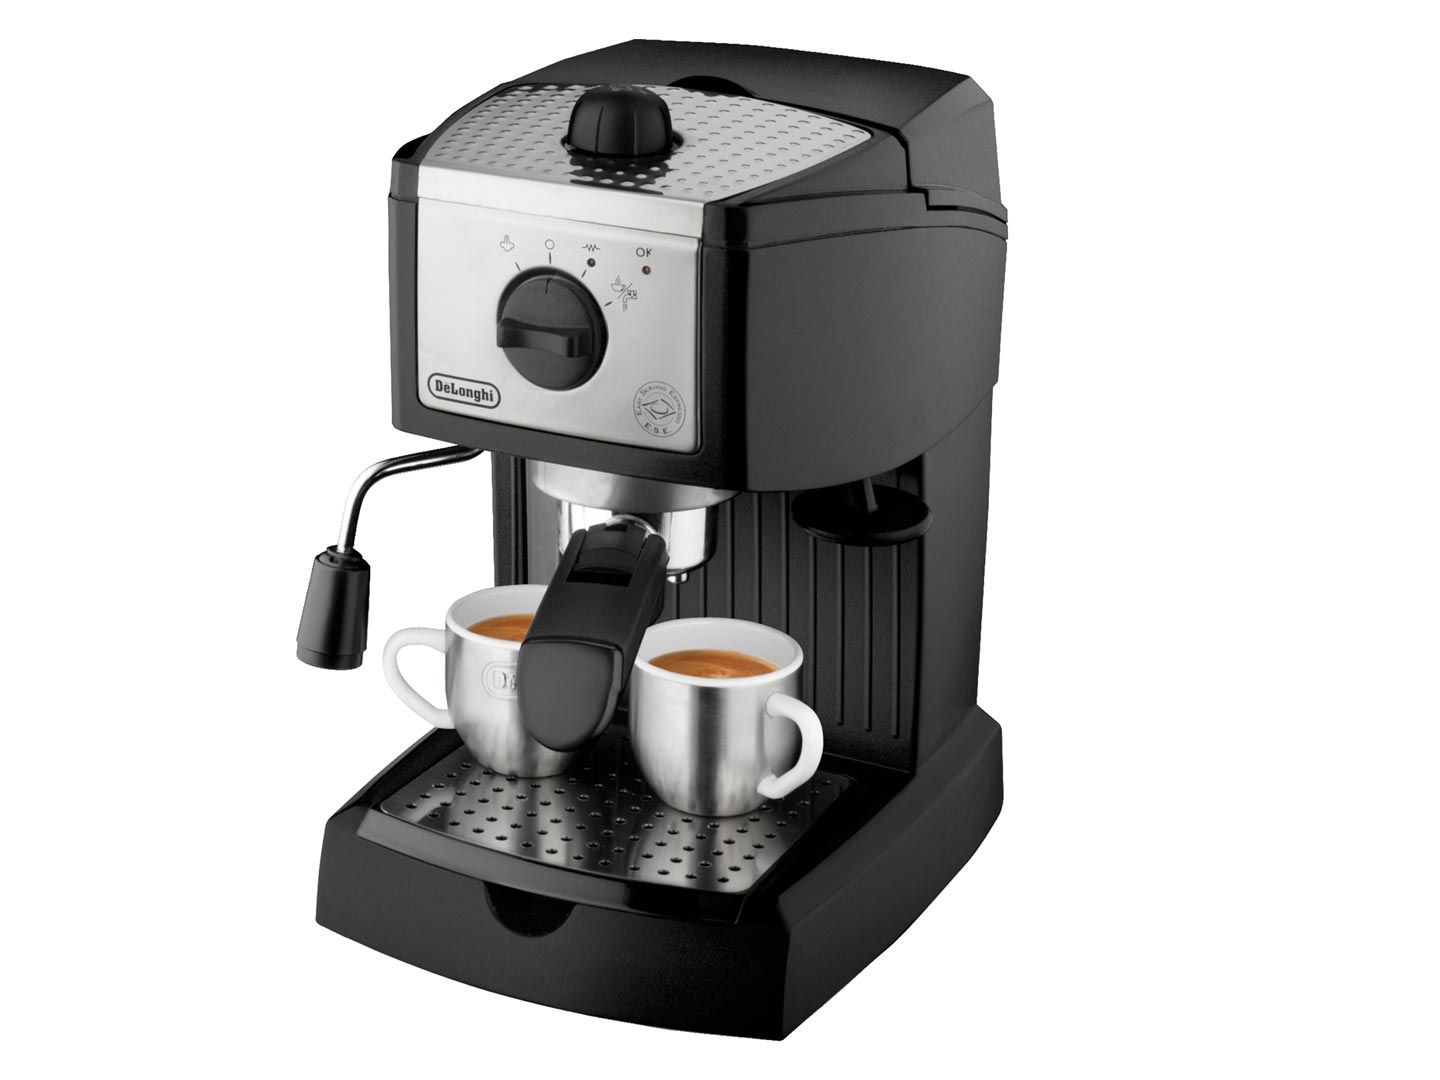 The DeLonghi EC155 15-Bar-Pump Espresso and Cappuccino Maker